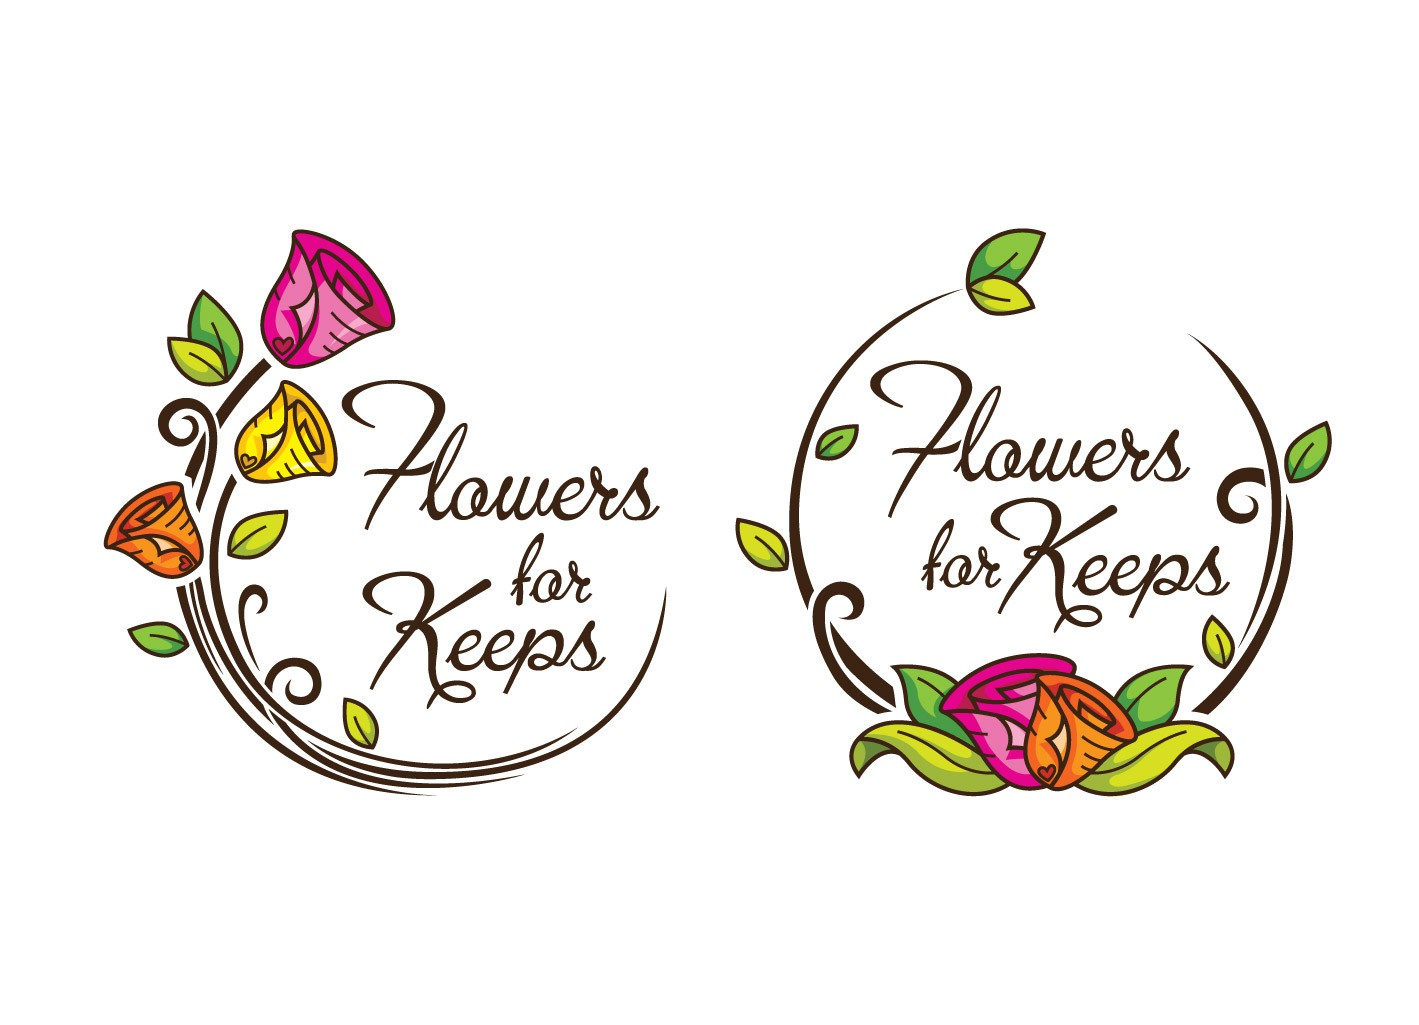 Create the next logo for Flowers for Keeps